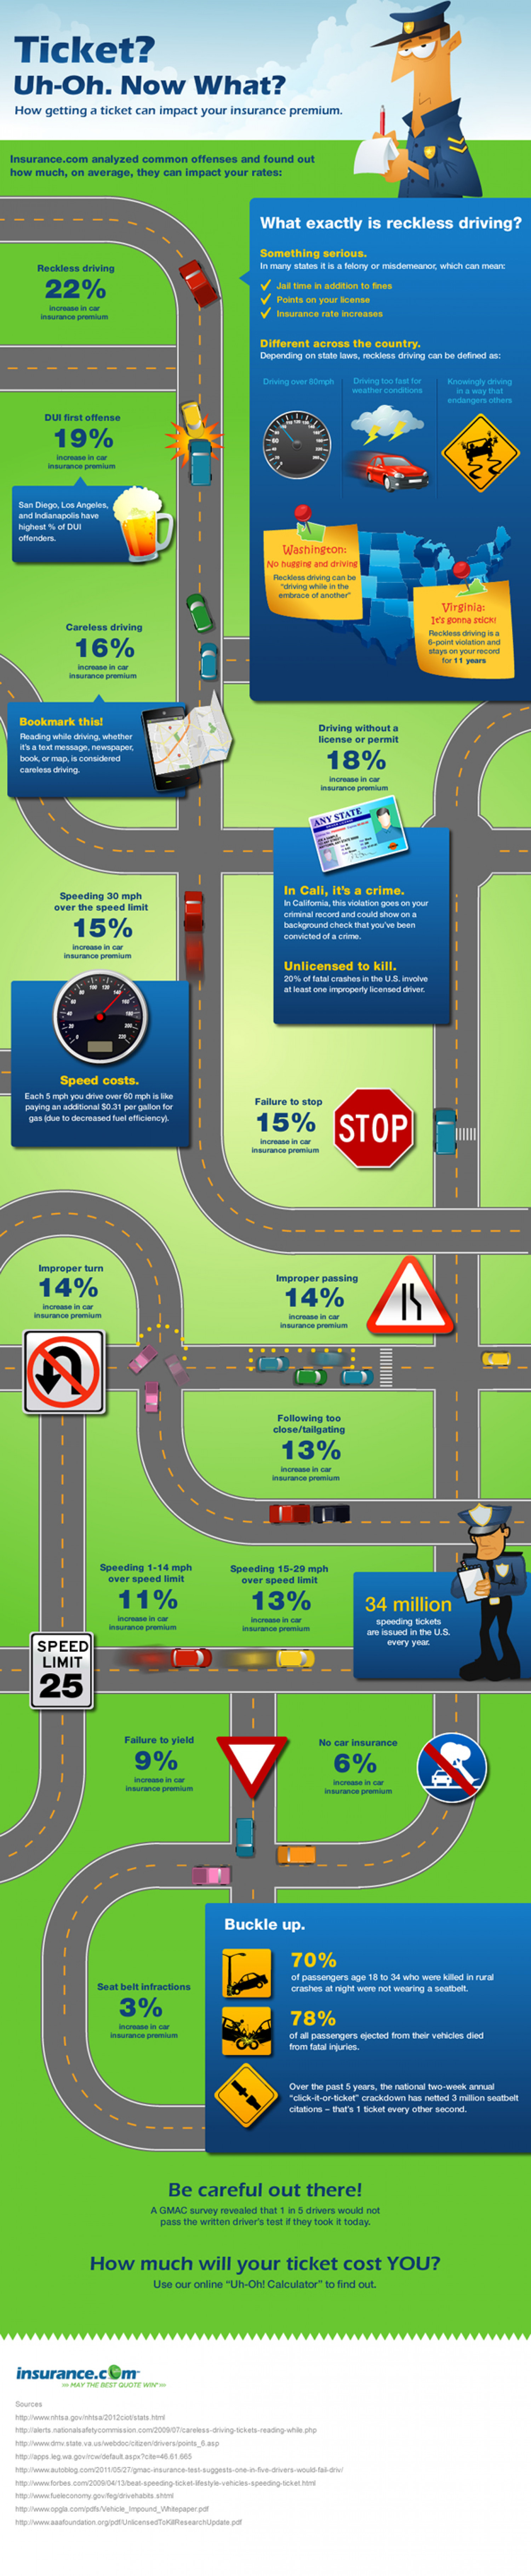 Ticket? Uh-Oh. Now What?  Infographic